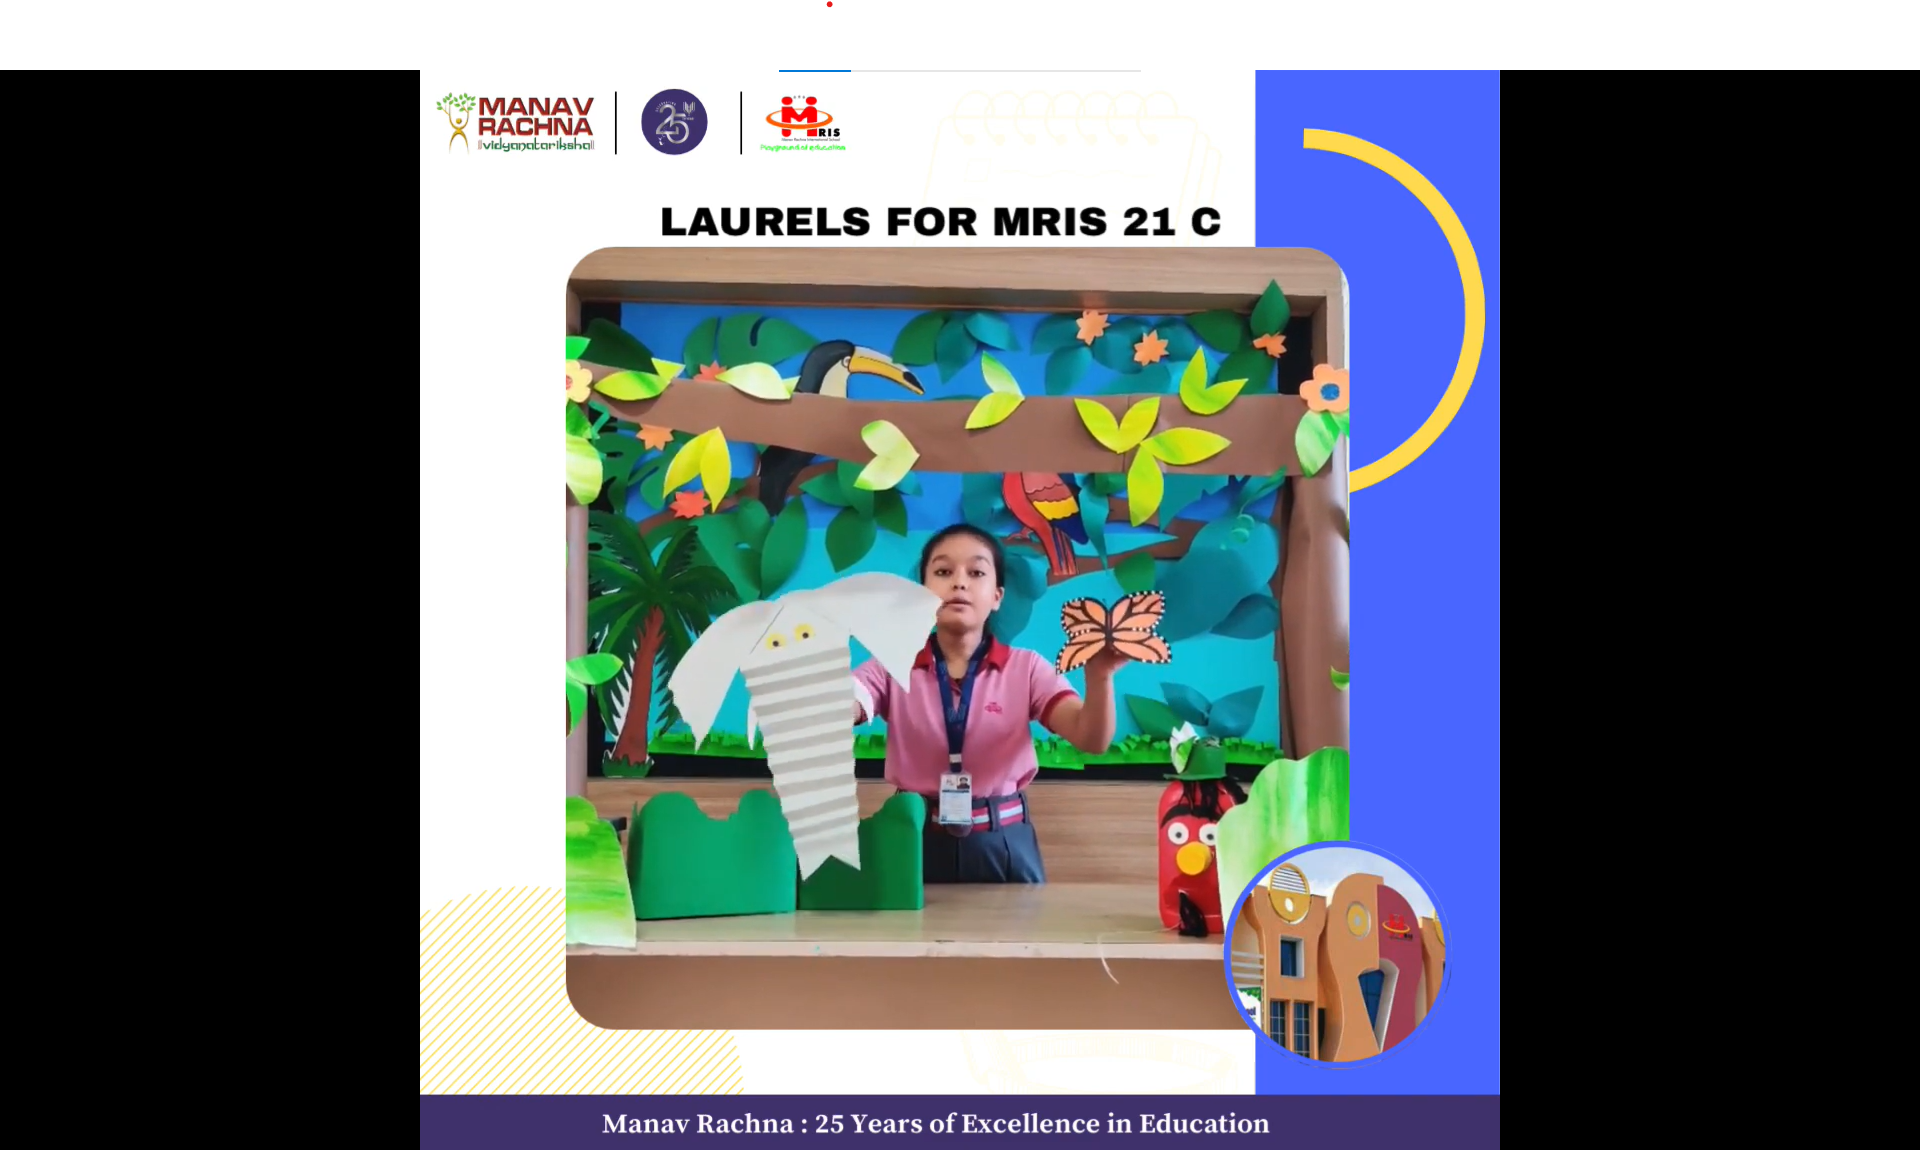 Aashna Aftab secured the first position in the 'Puppet Maestro' category in Ullas 2021